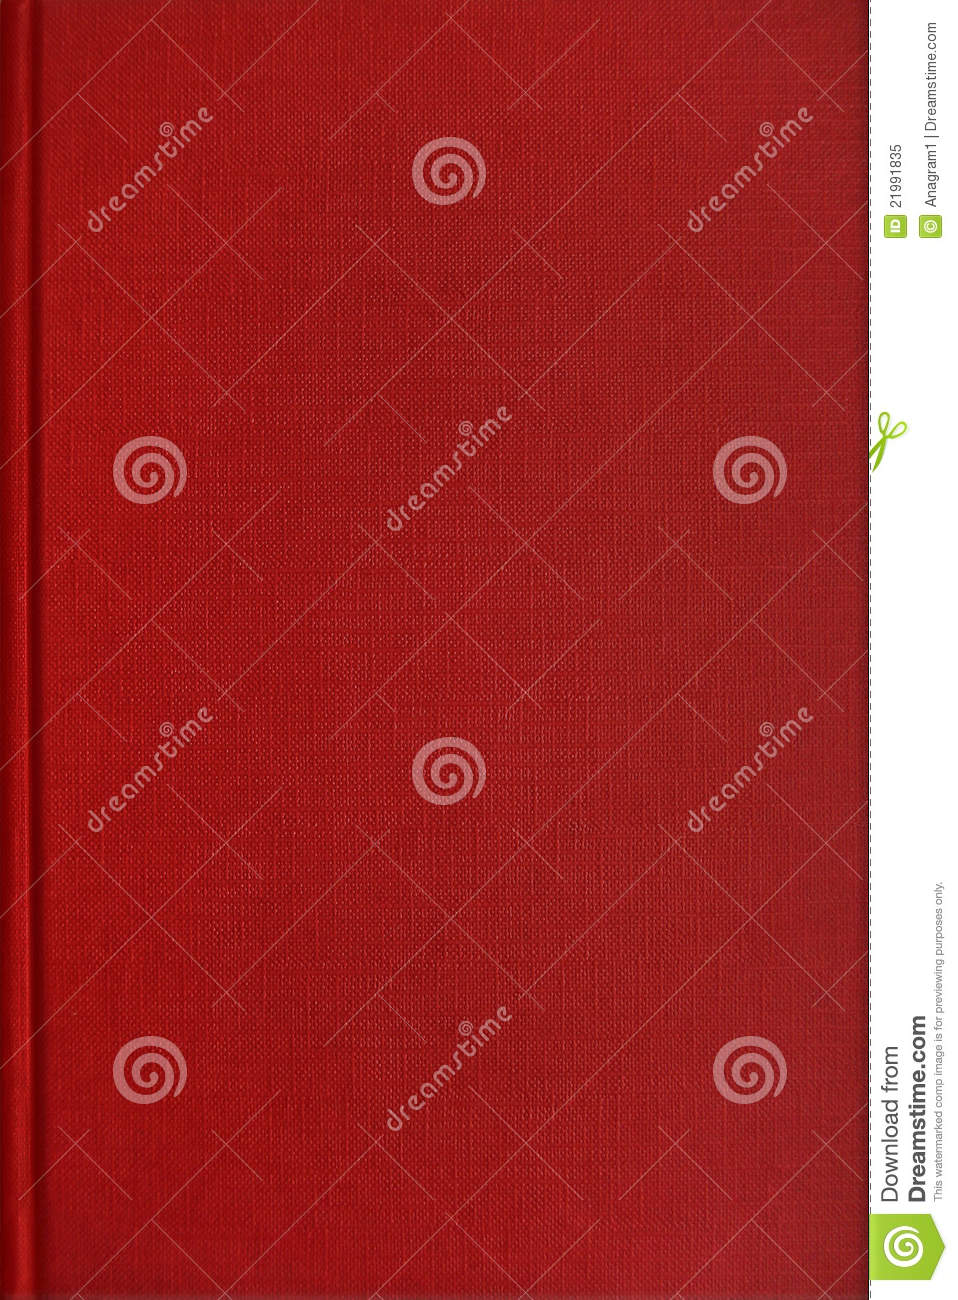 Cookbook With Red Cover : Red book cover royalty free stock photo image